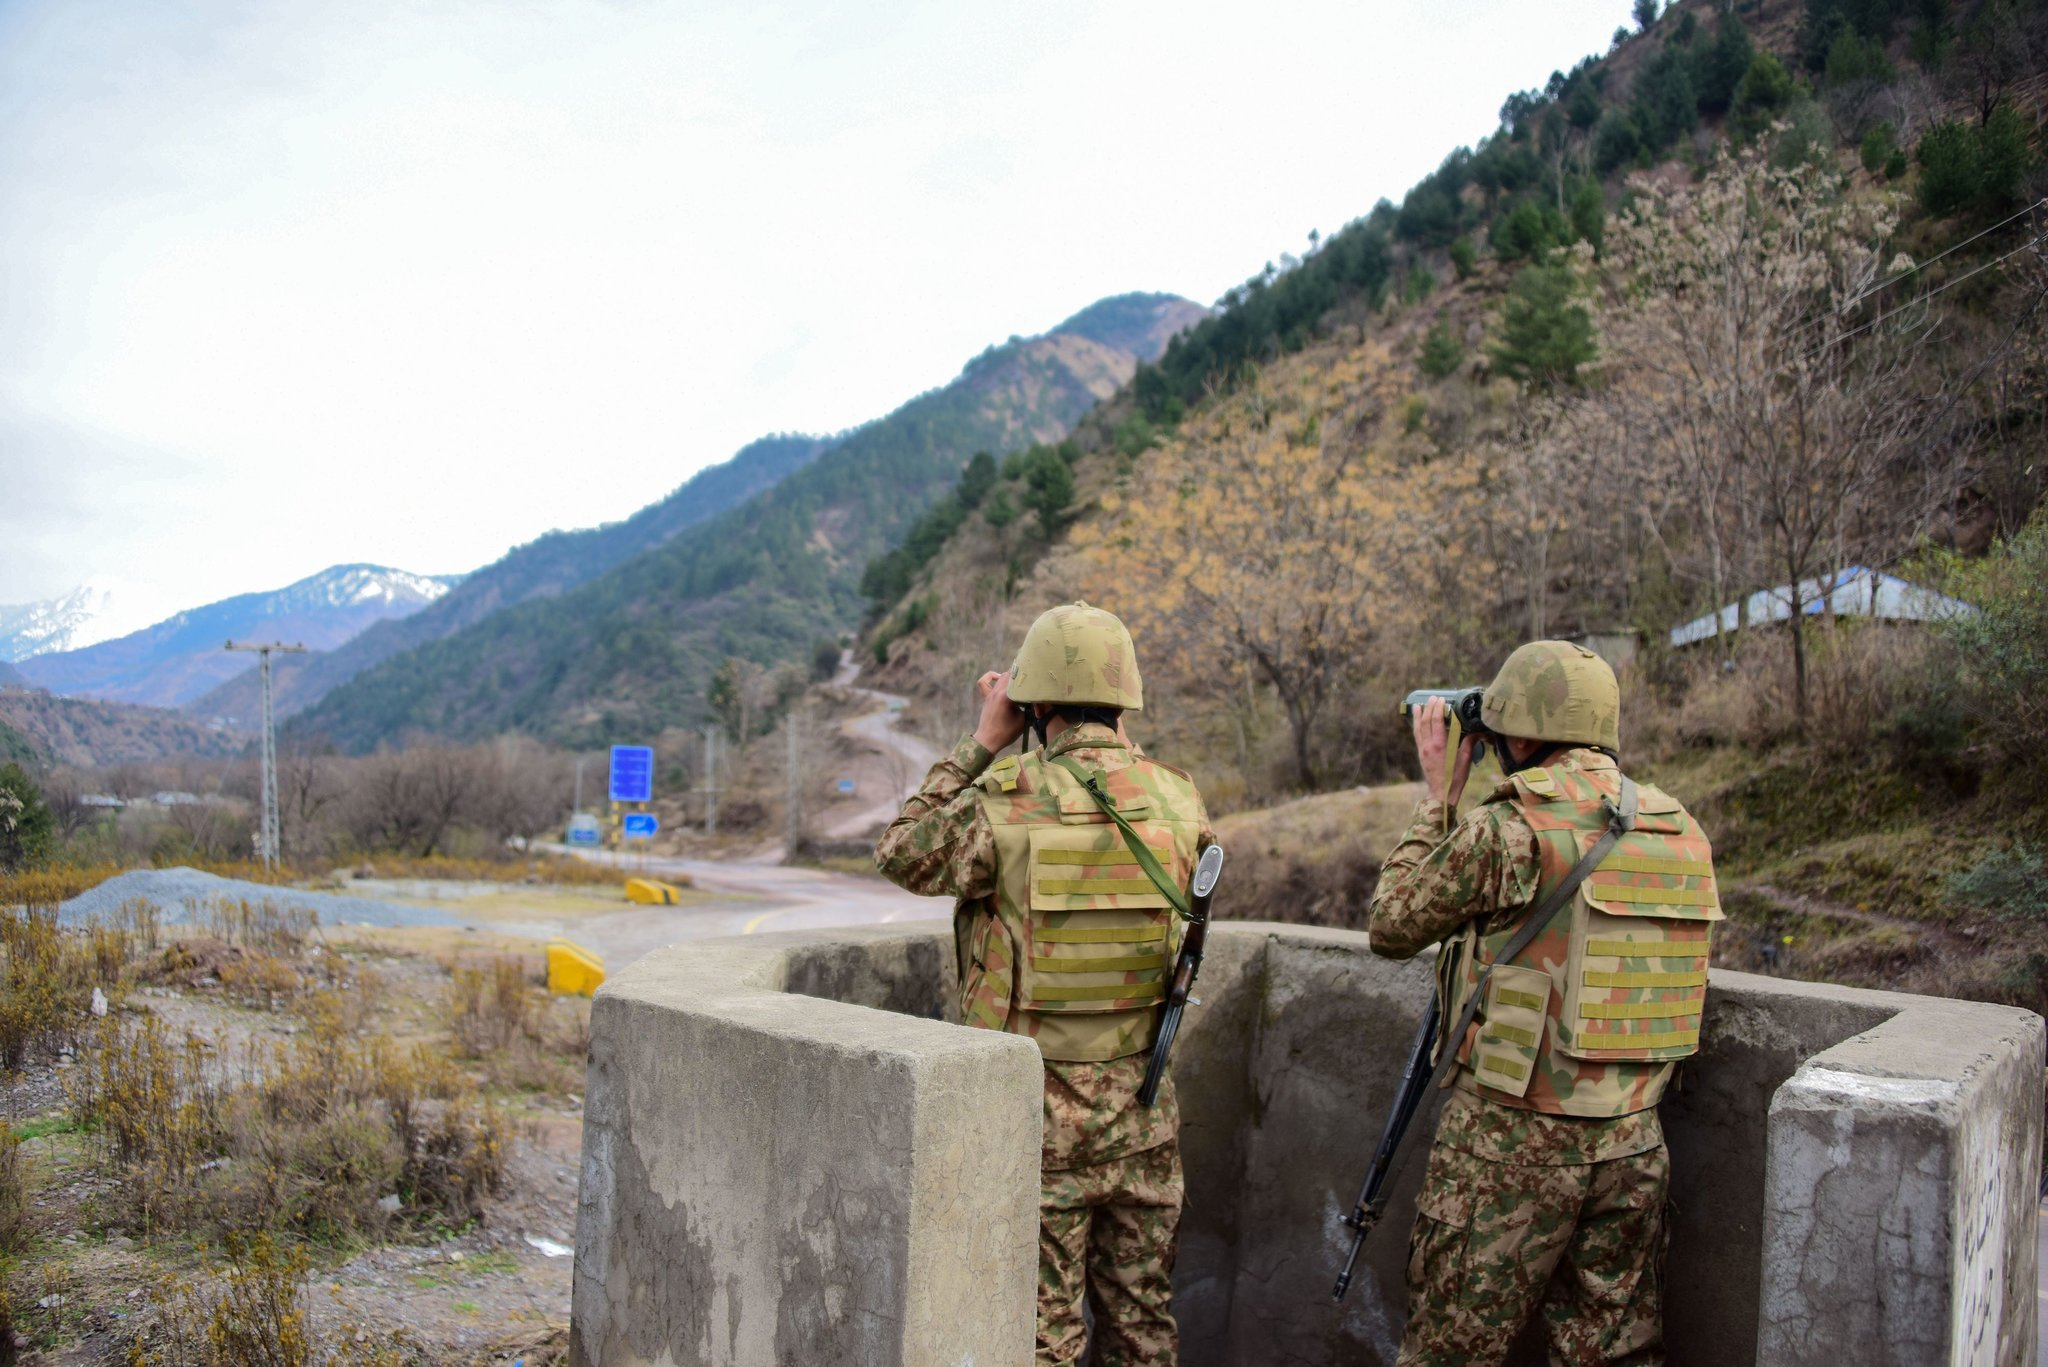 Pakistani soldiers watching over potential Indian troop movements on Saturday at the Chakothi post, near the Pakistan-India border.